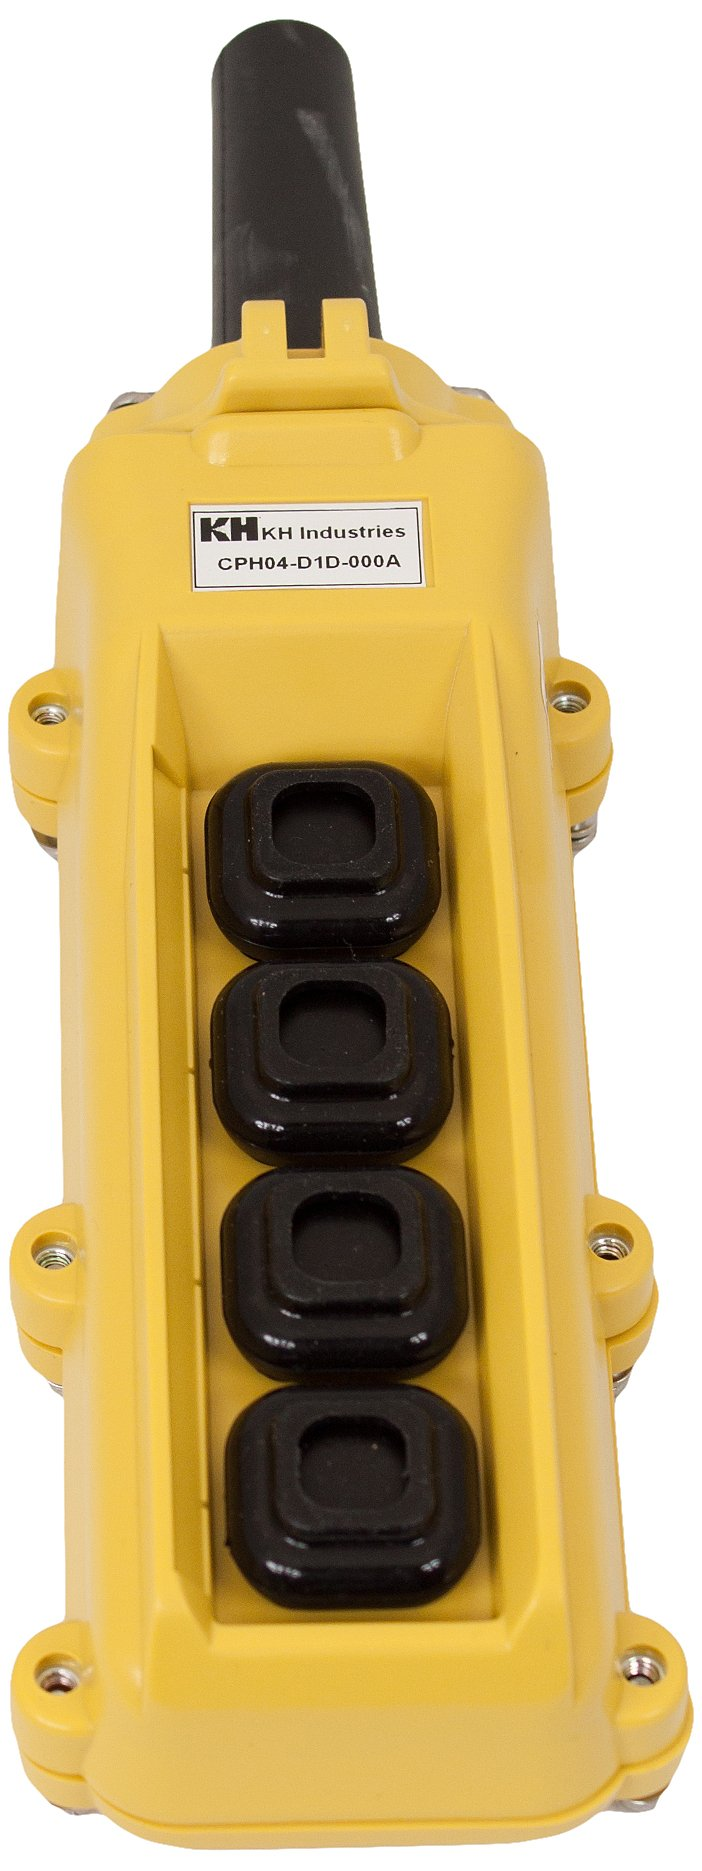 KH Industries CPH04-C1C-000A 4 Push Buttons Pendant Control Switch, 2-Single Speed by KH Industries